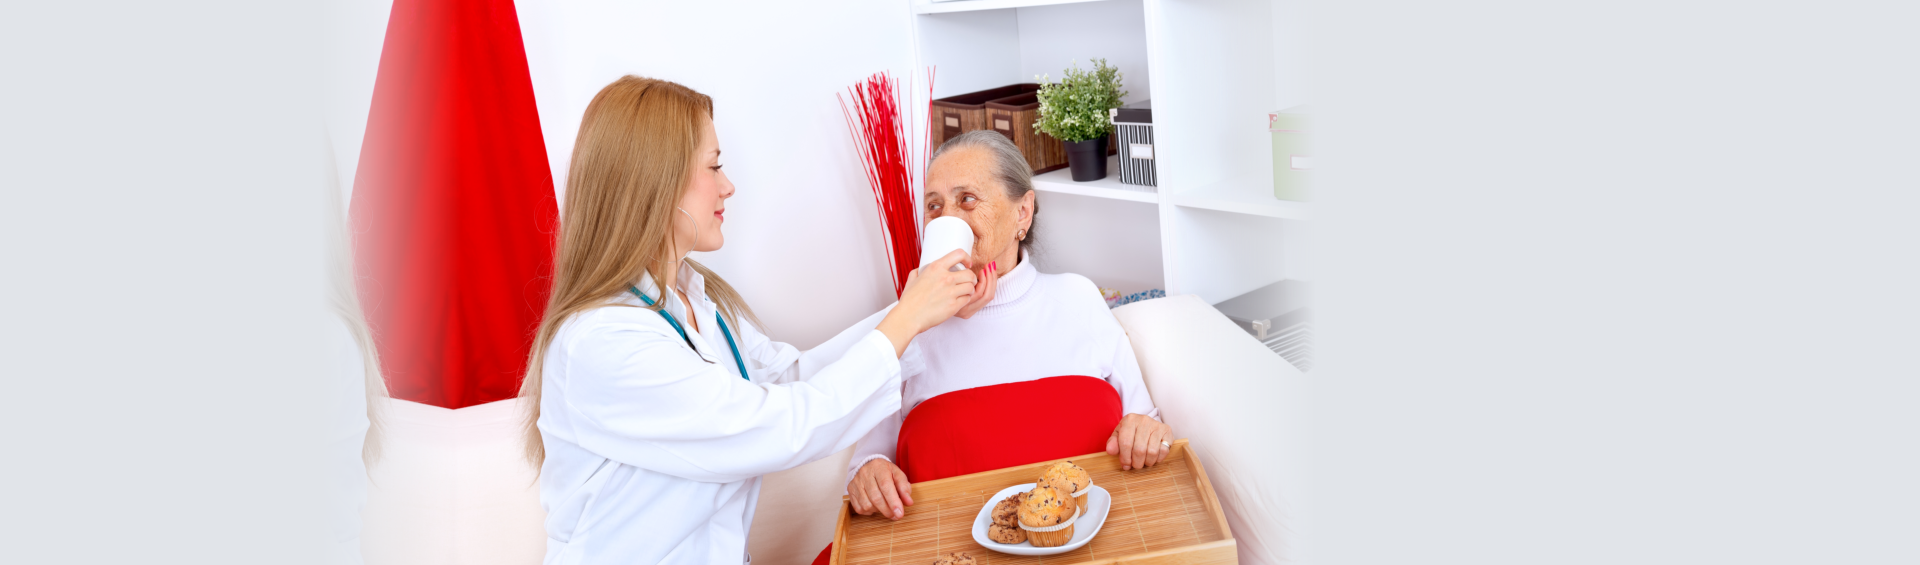 caregiver feeding an elderly woman in bed